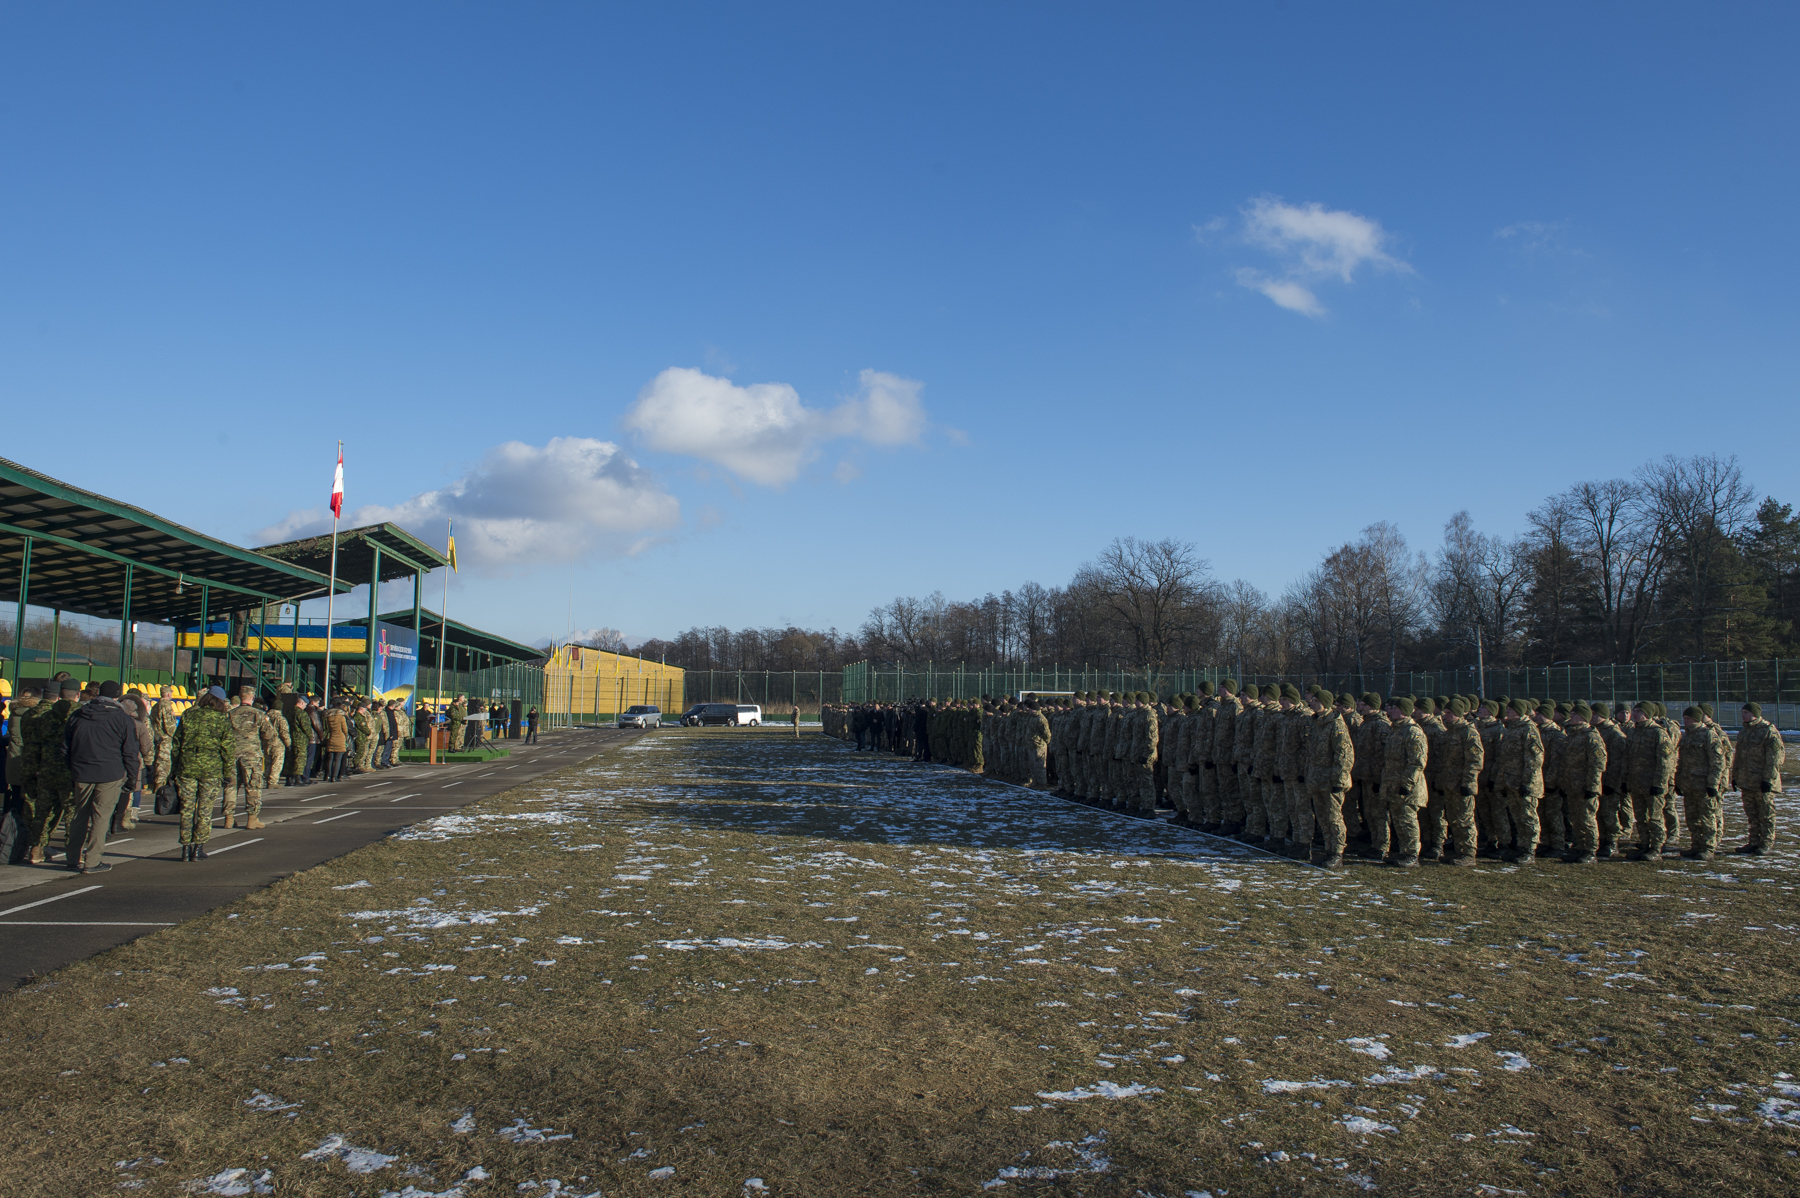 Her Excellency was welcomed by Canadian, Ukrainian and American troops.